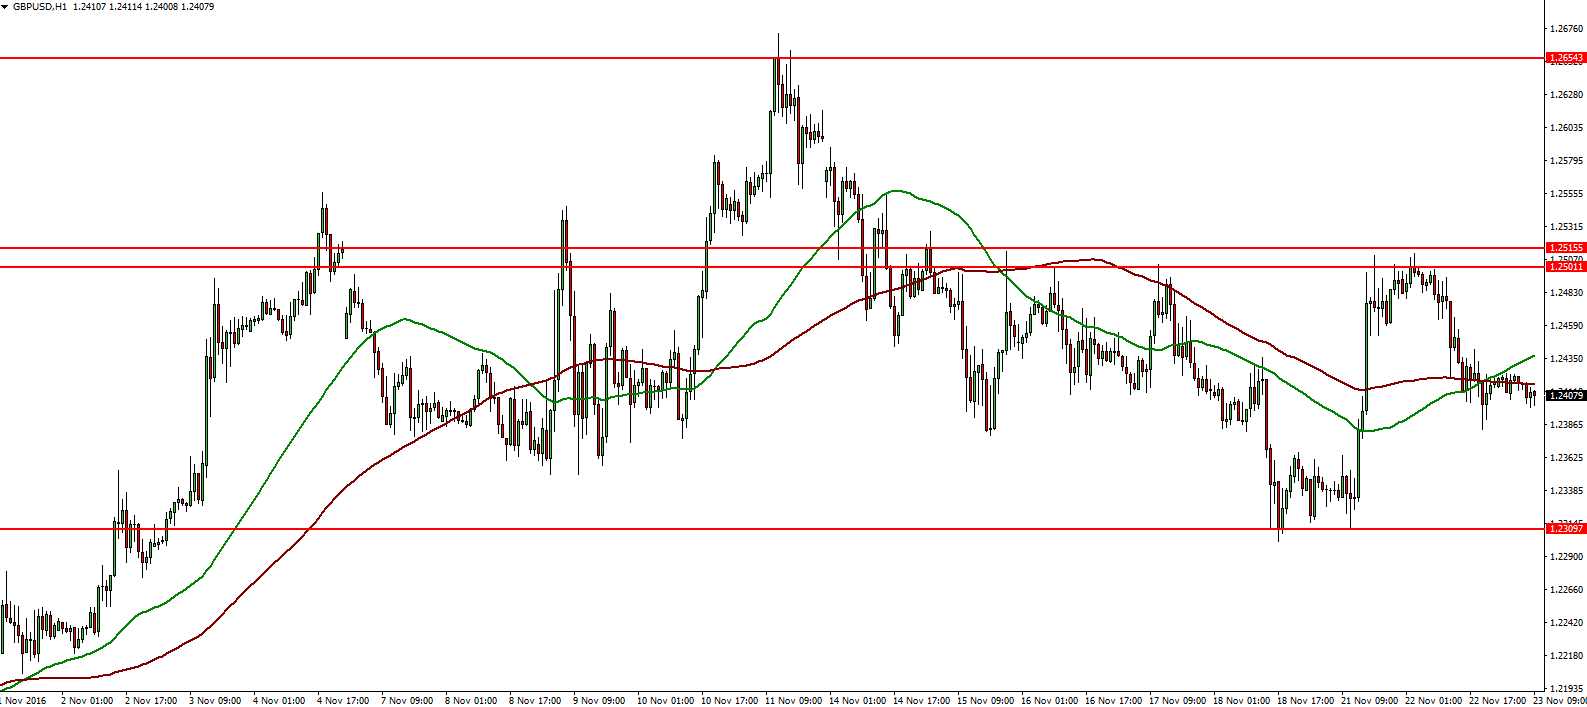 Intraday forex data